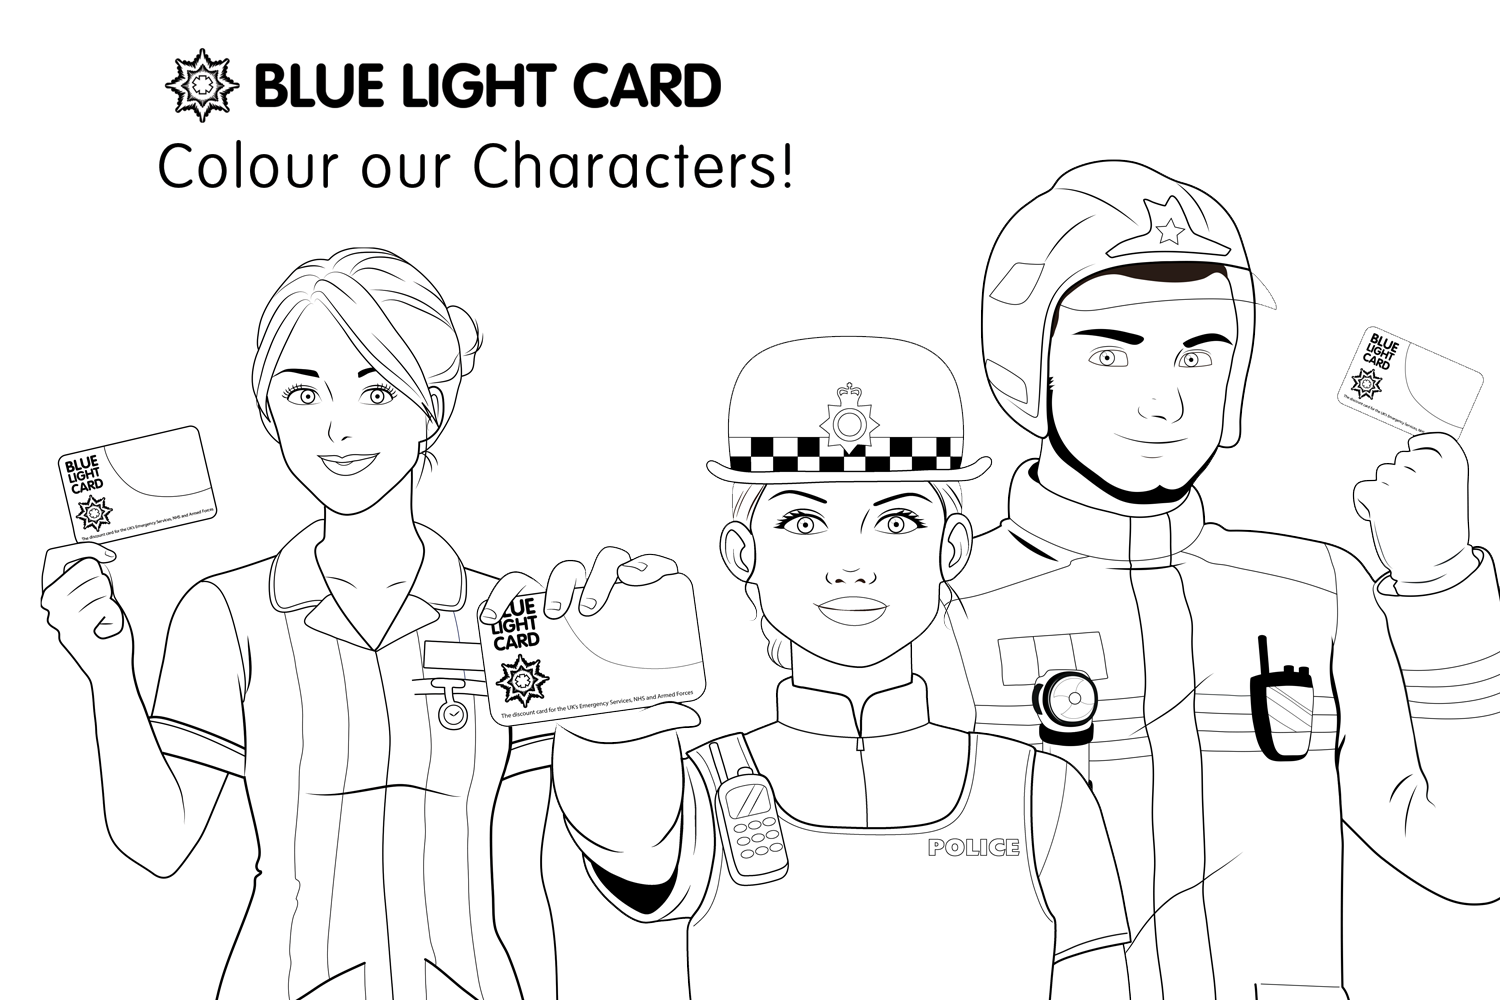 Colour our Characters!>